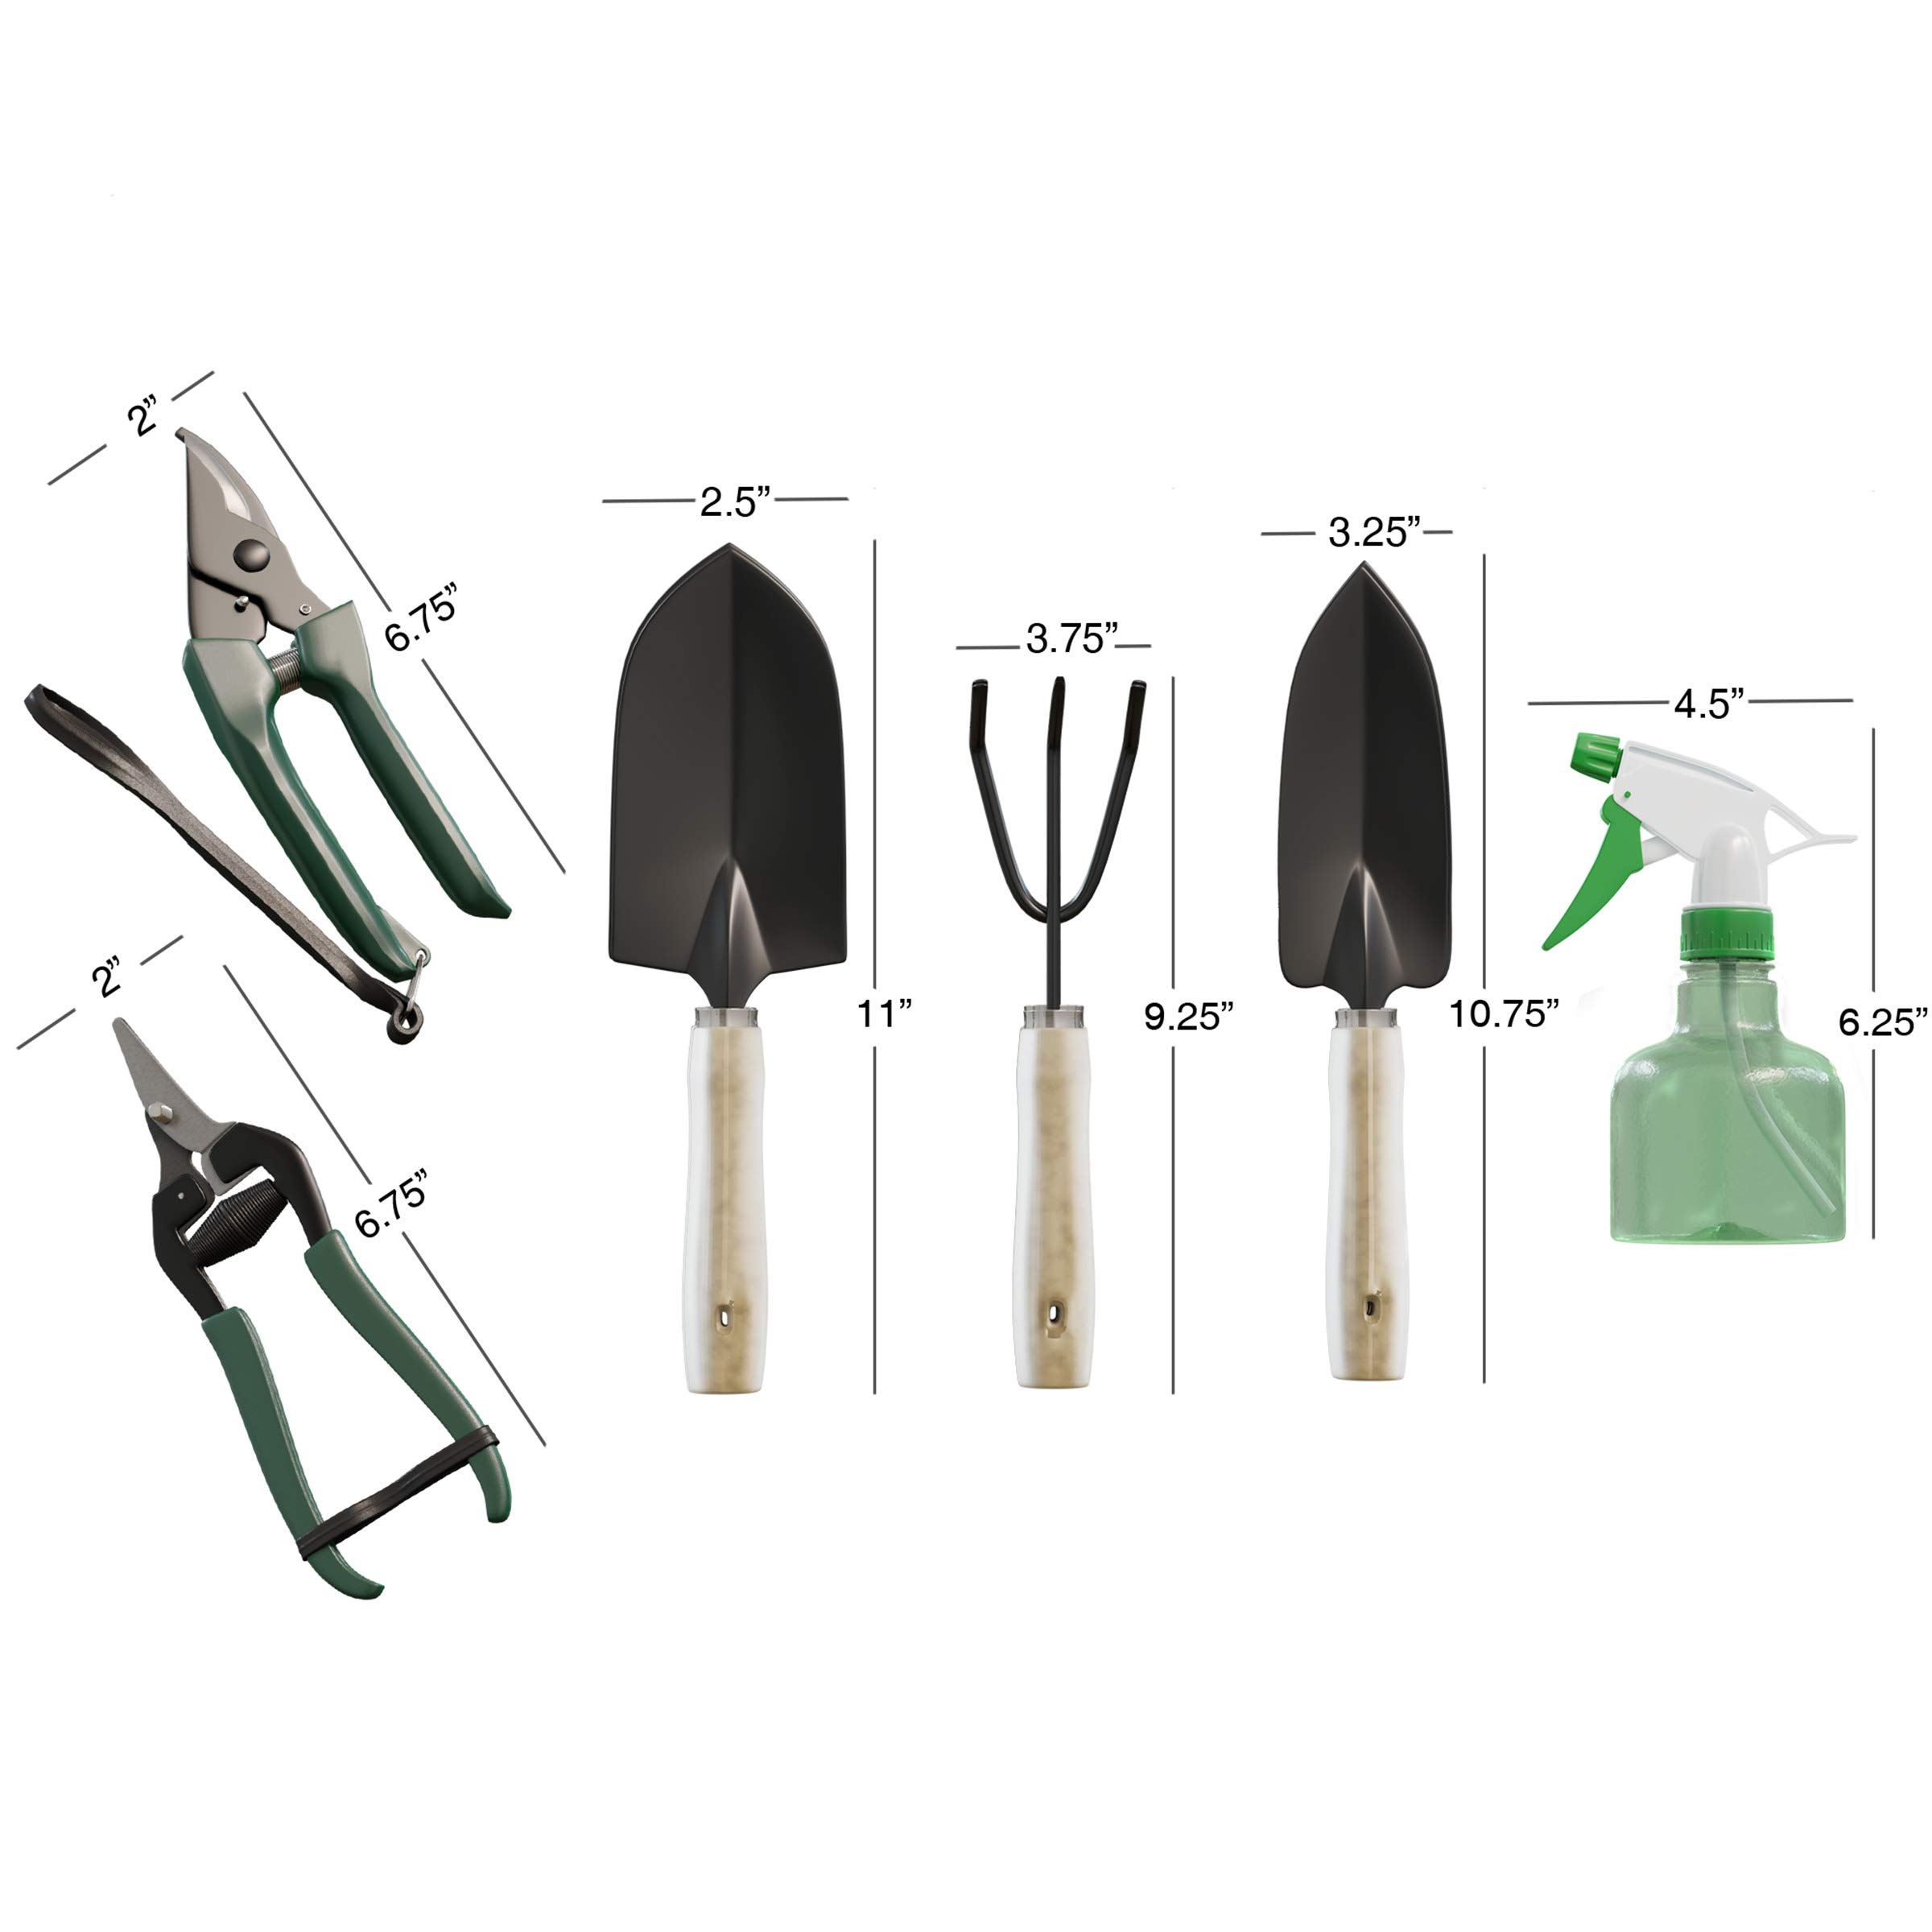 Pure Garden 8 Piece Garden Tote and Tool Set- Gardening Hand Tools and Supply Essentials Kit Includes Storage Bag, Rake, Shovel, Trowel, More by Pure Garden (Image #3)